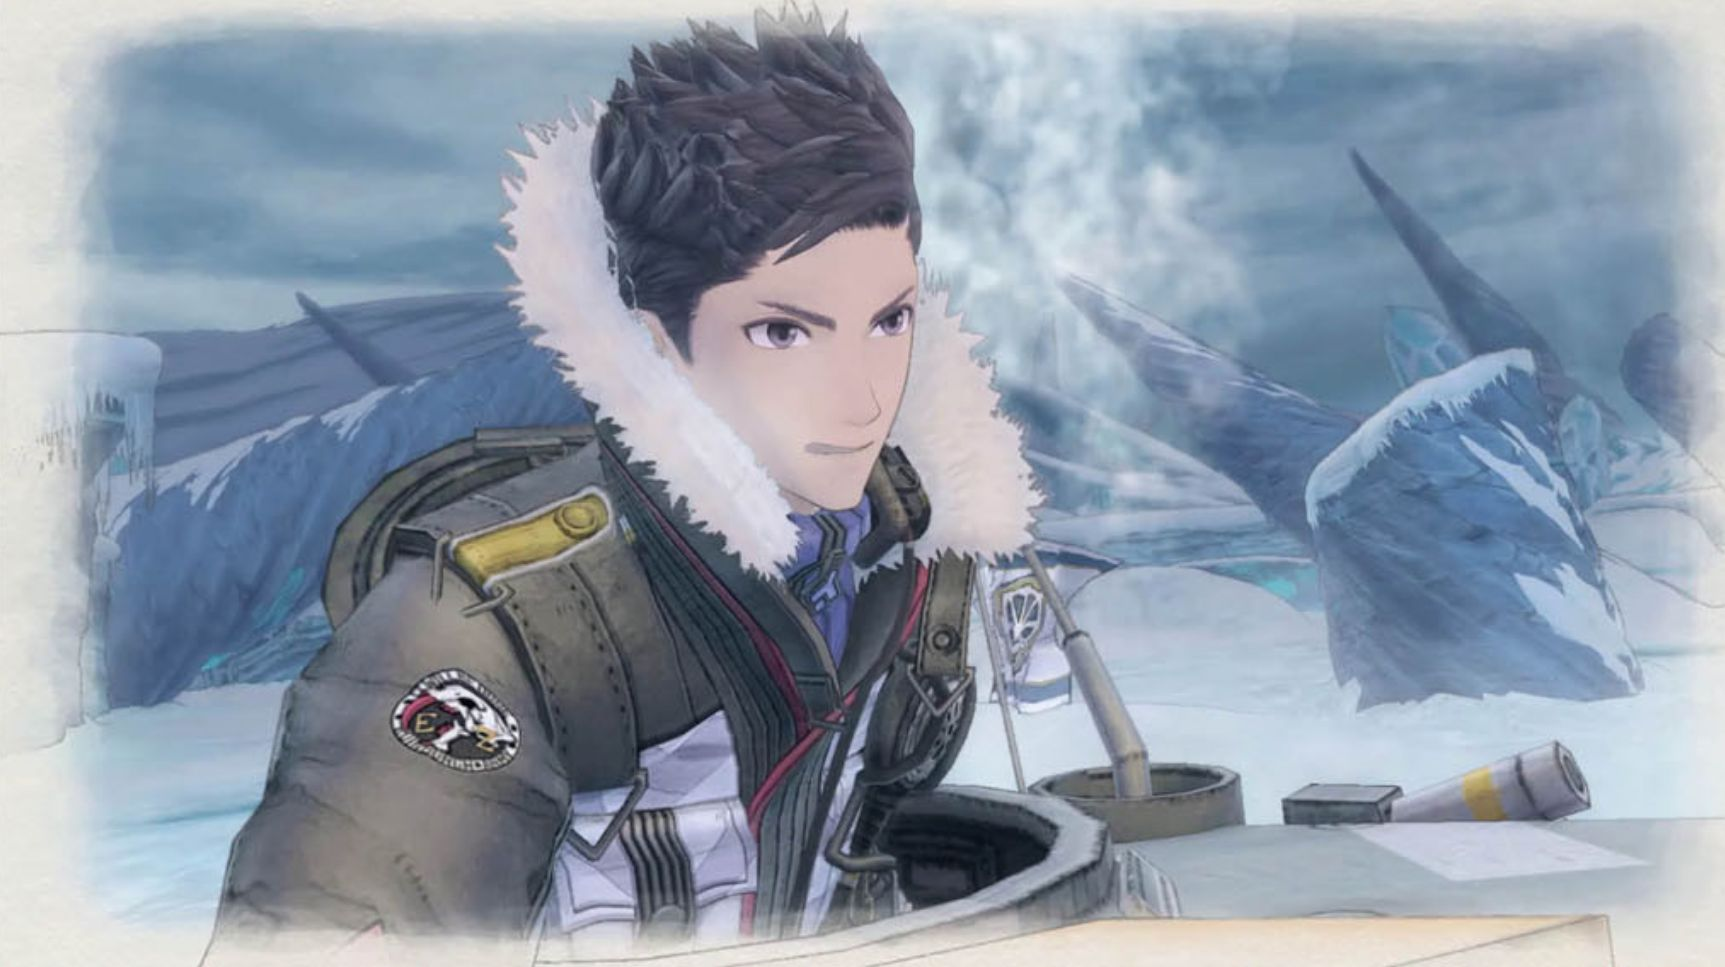 valkyria-chronicles-4-sega-tactical-rpg-jrpg-playstation-4-xbox-one-nintendo-switch-screenshots-famitsu